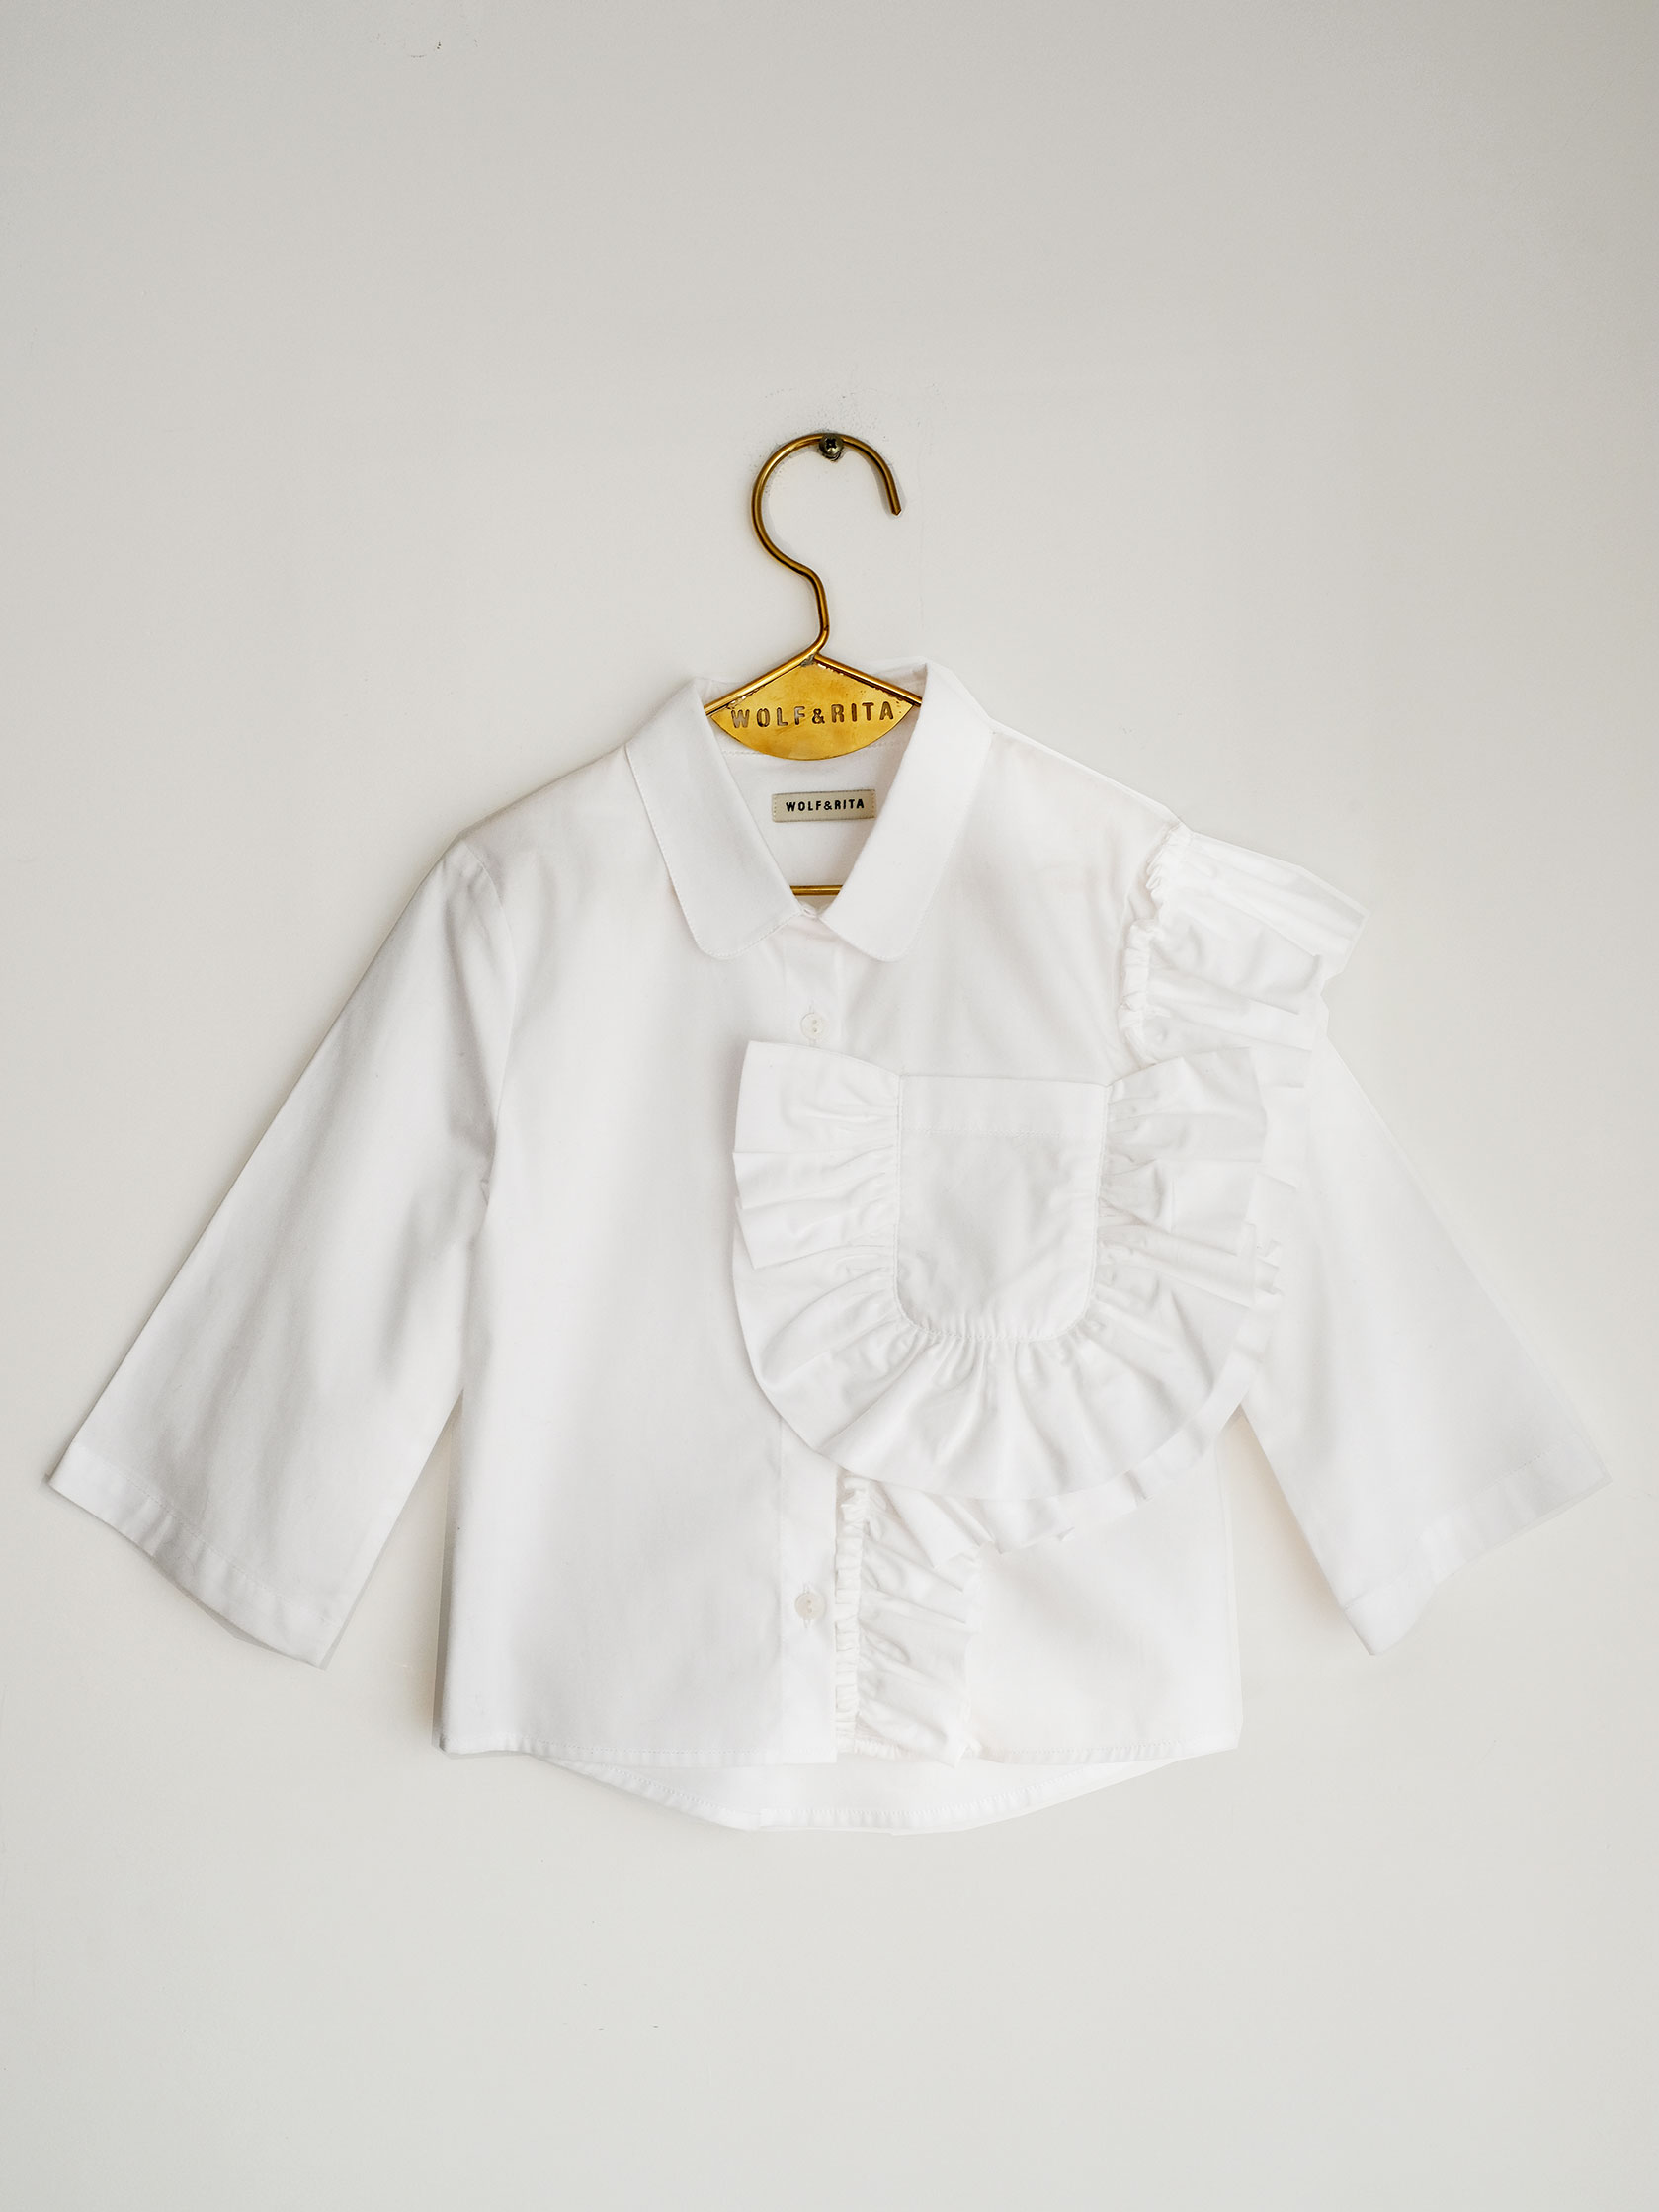 【WOLF & RITA】CAROLINA - Blouse/WHITE